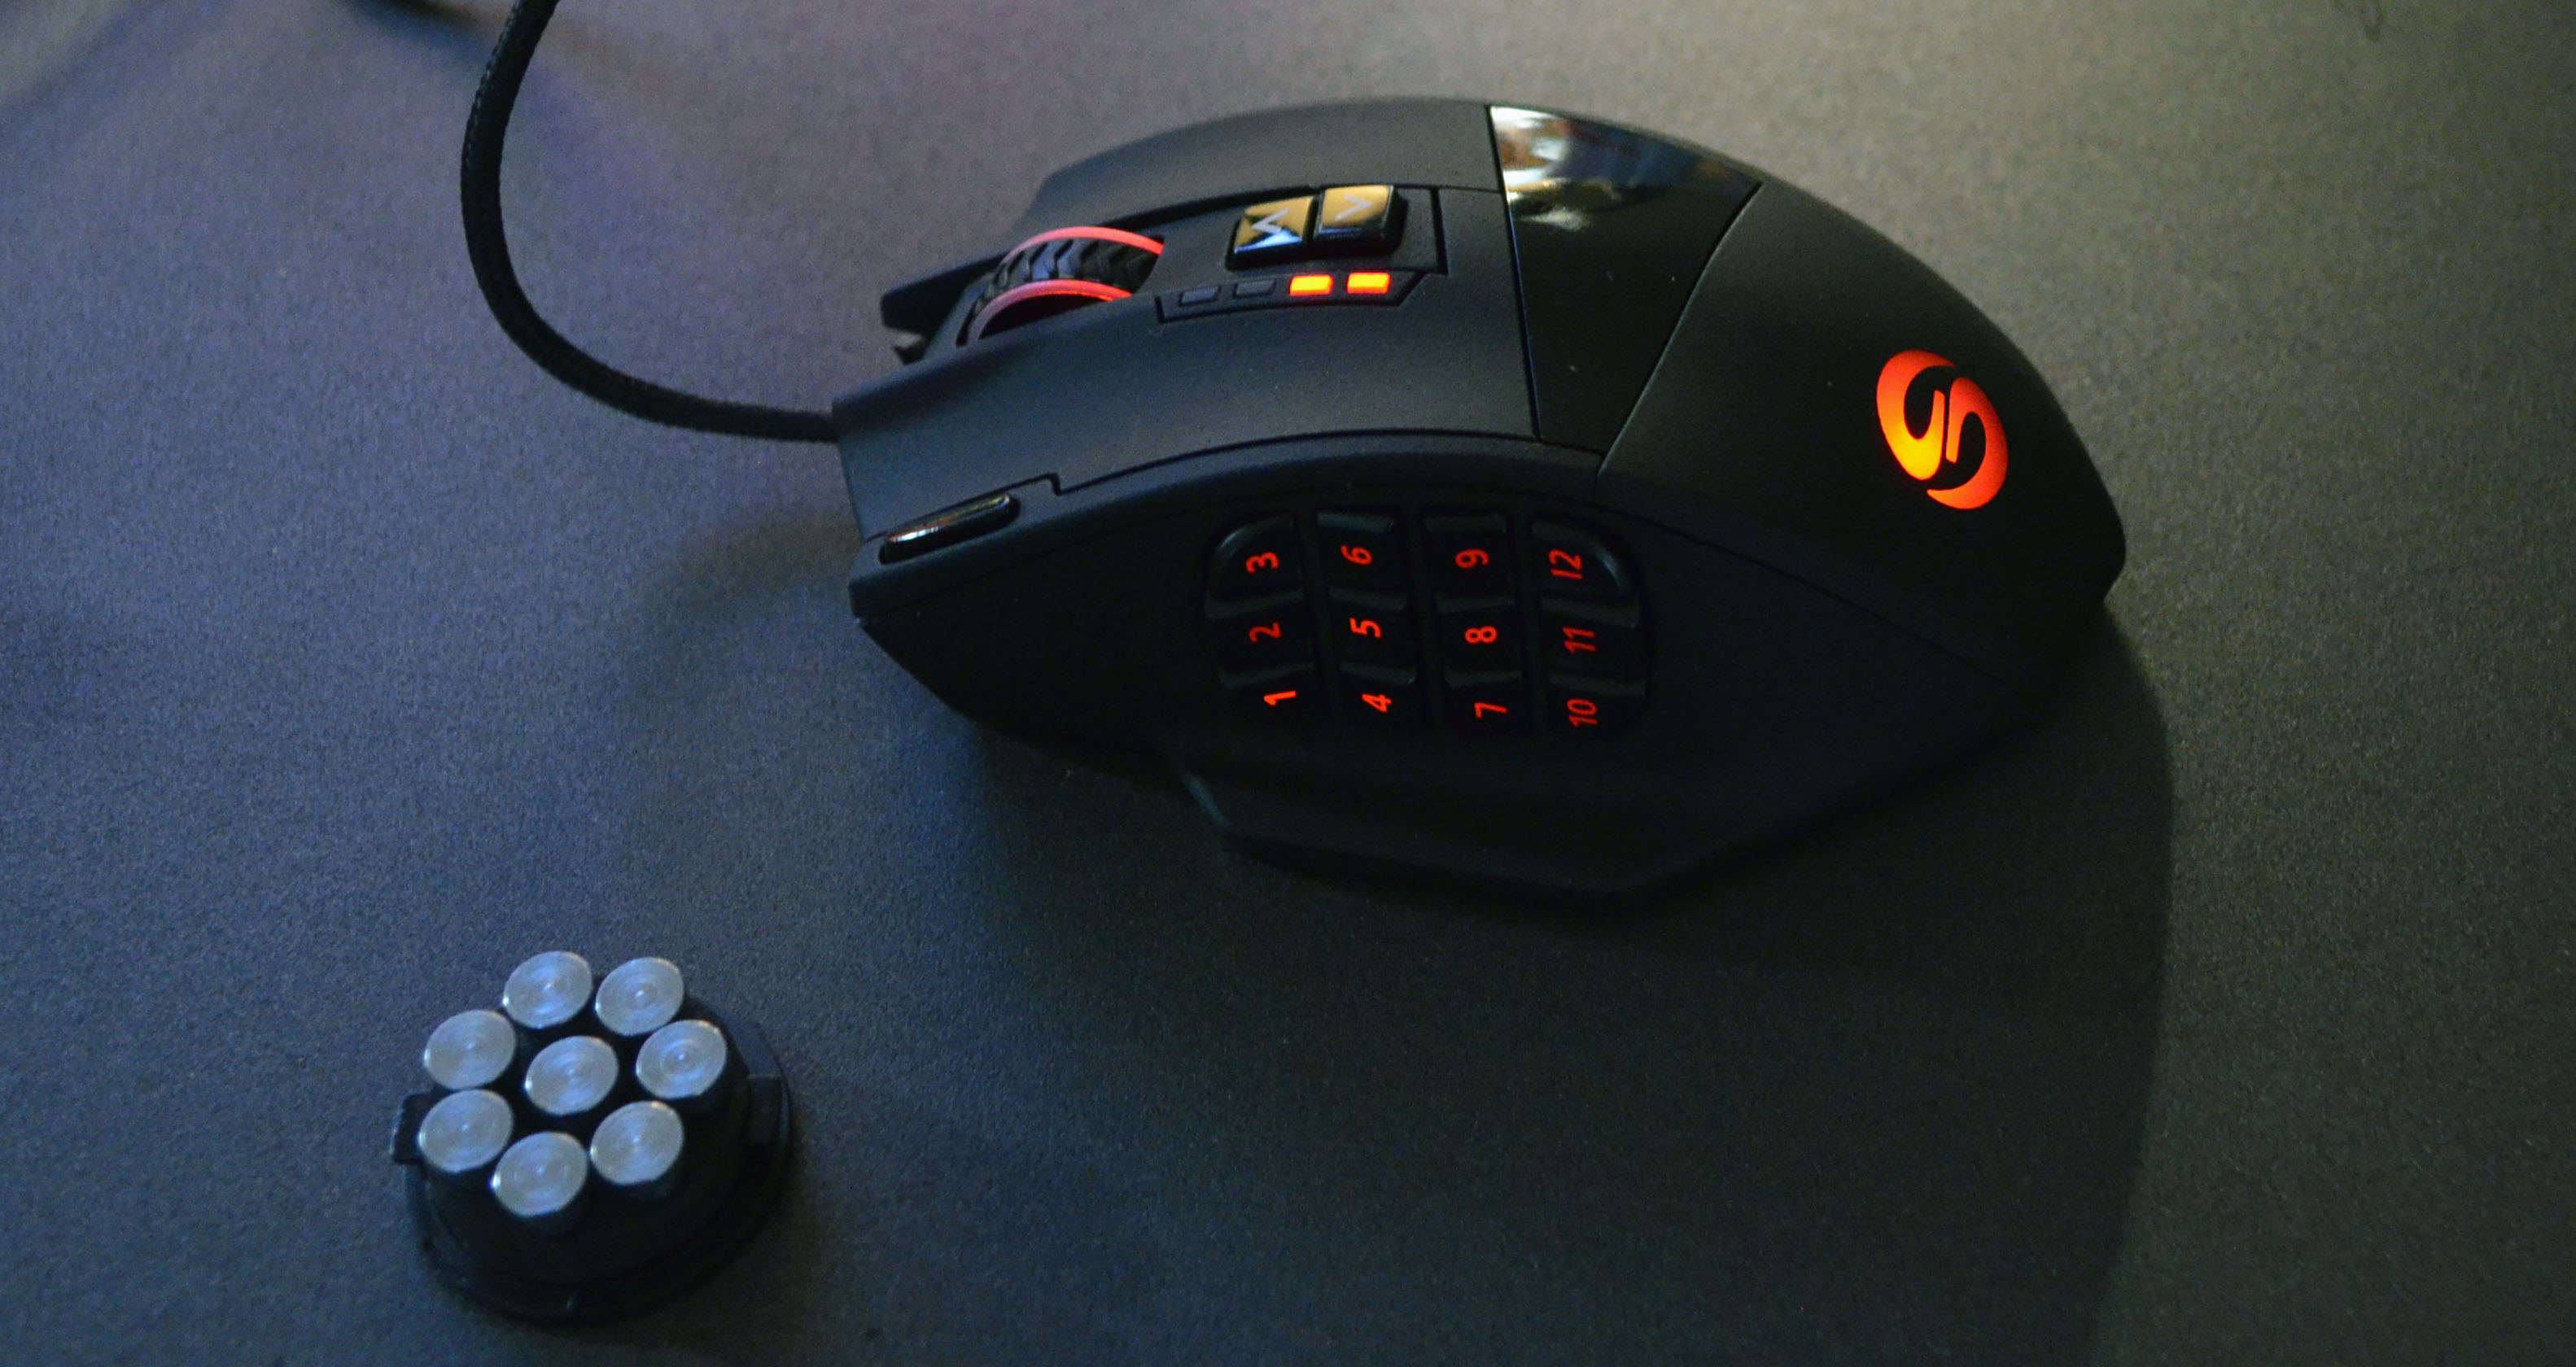 Review: UtechSmart Venus MMO Gaming Mouse